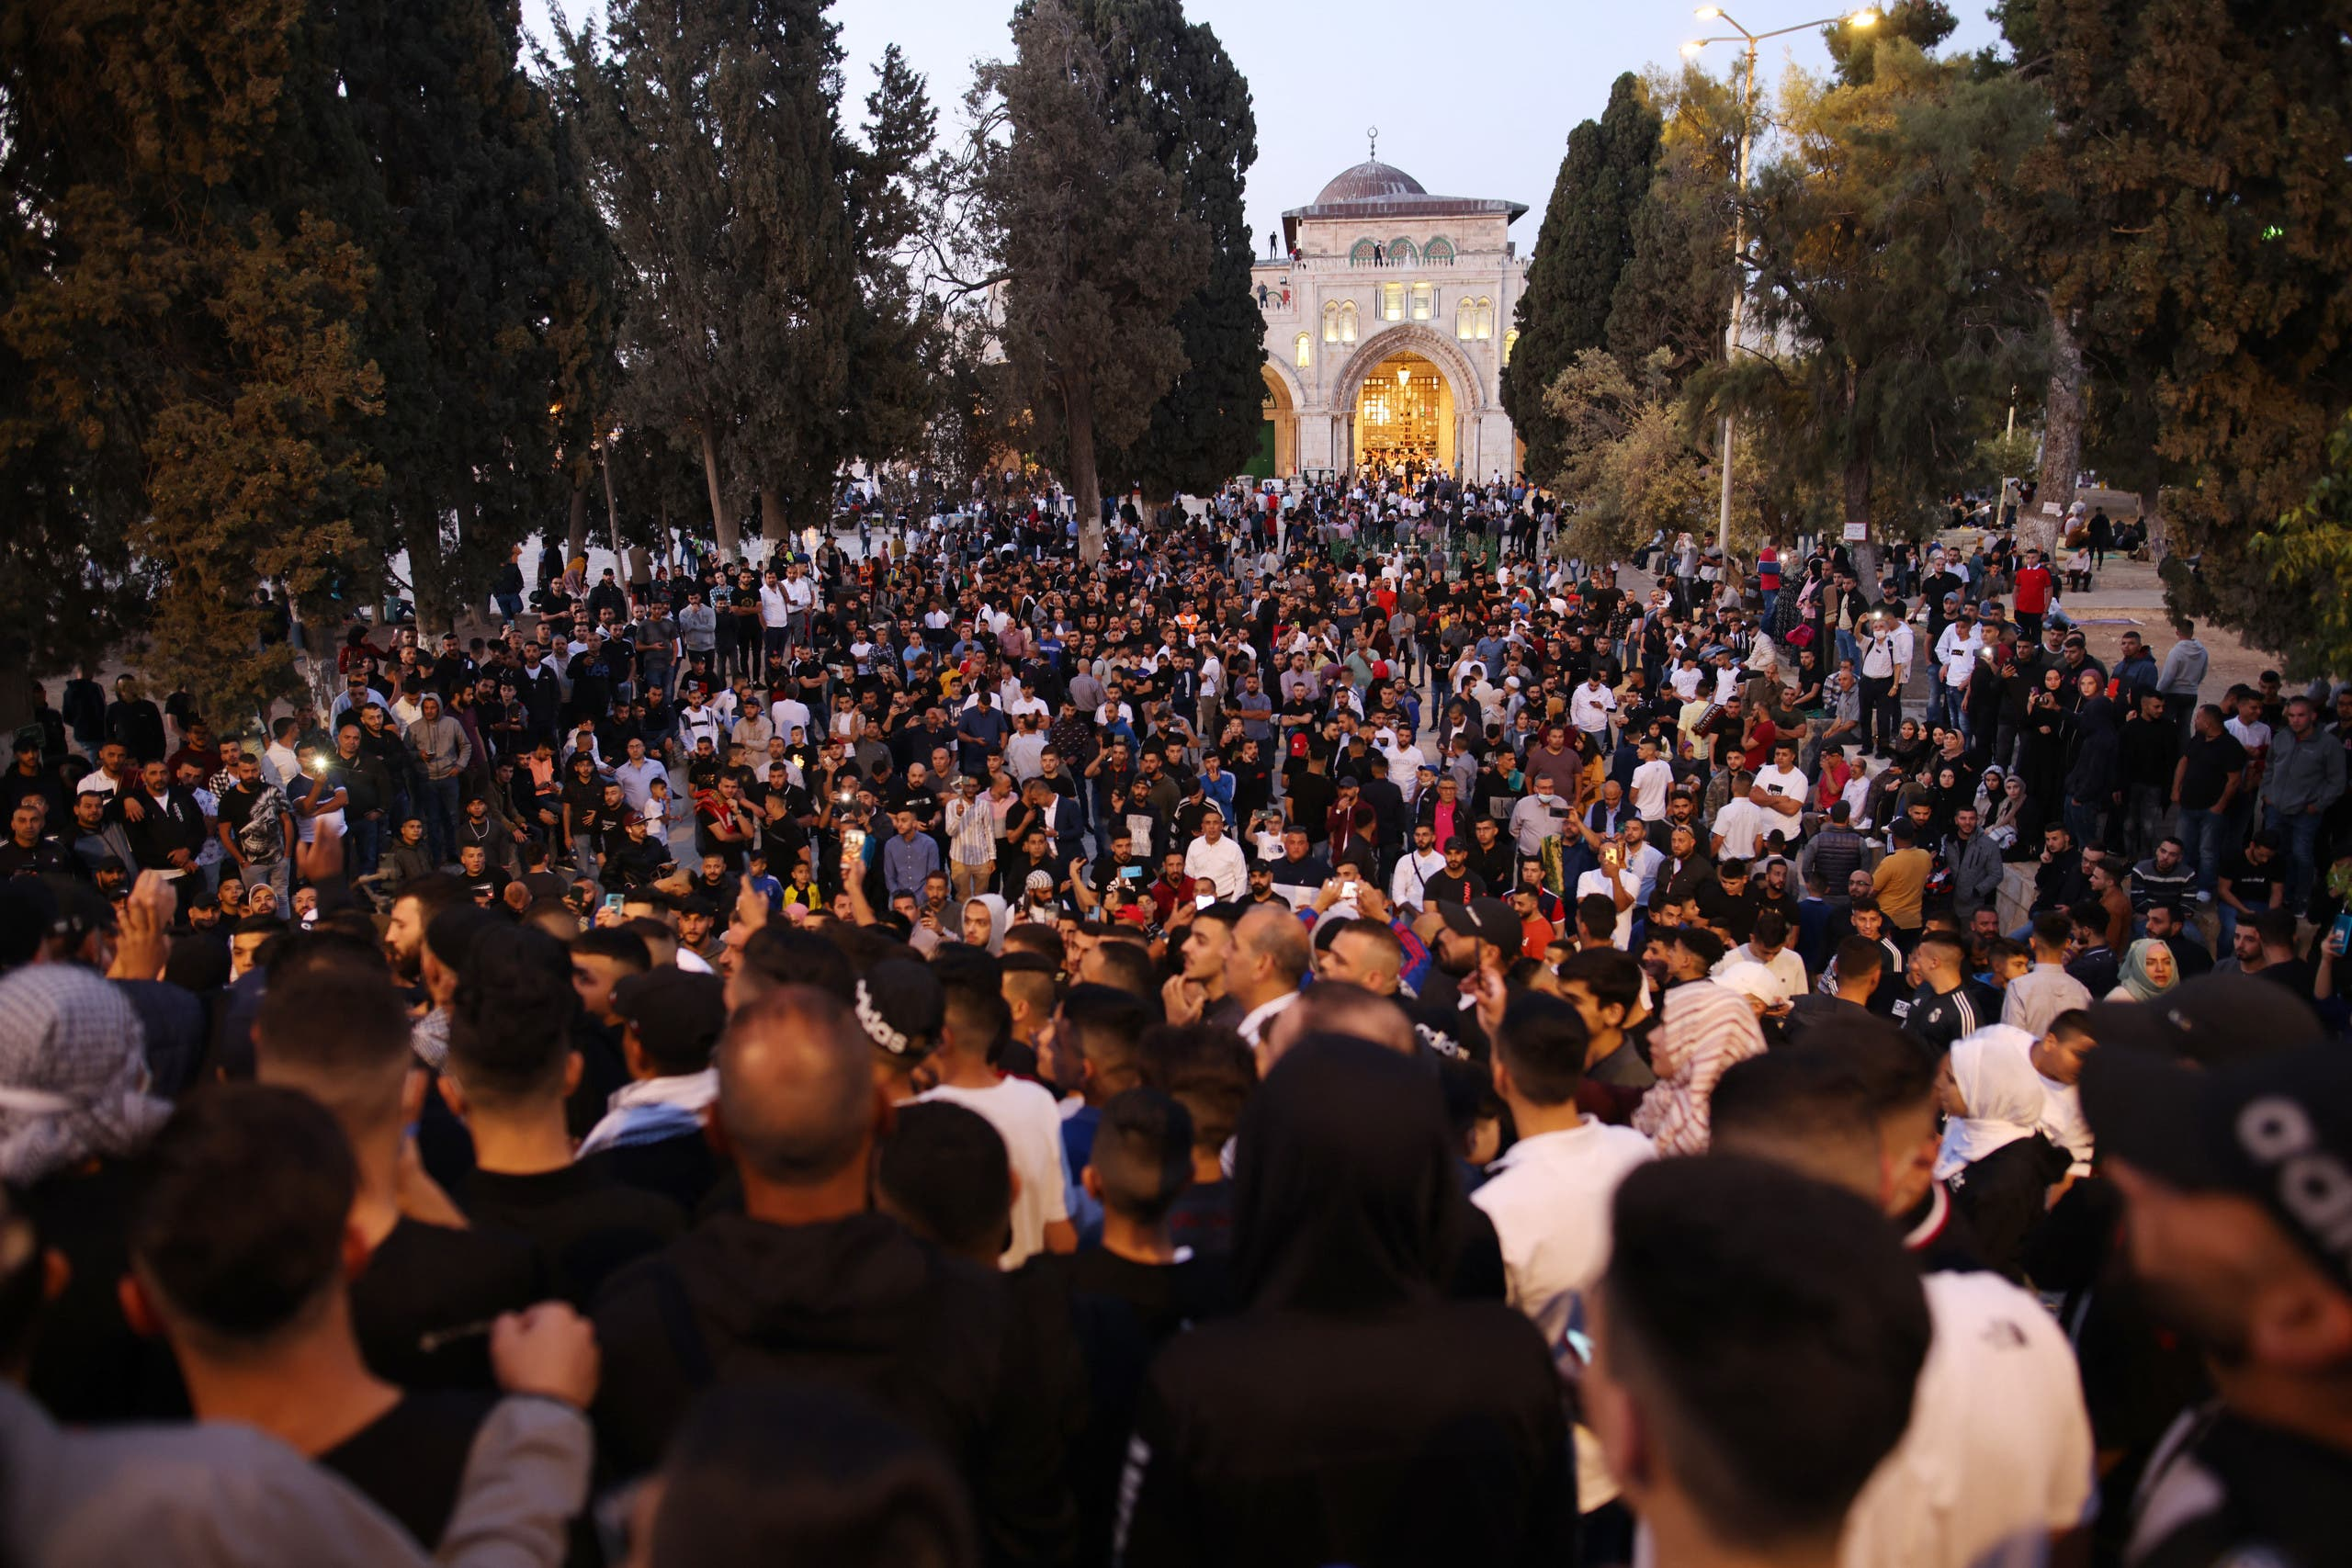 Muslim worshippers gather at the al-Aqsa mosques compound in Old Jerusalem for the morning Eid al-Fitr prayer early on May 13, 2021. (AFP)